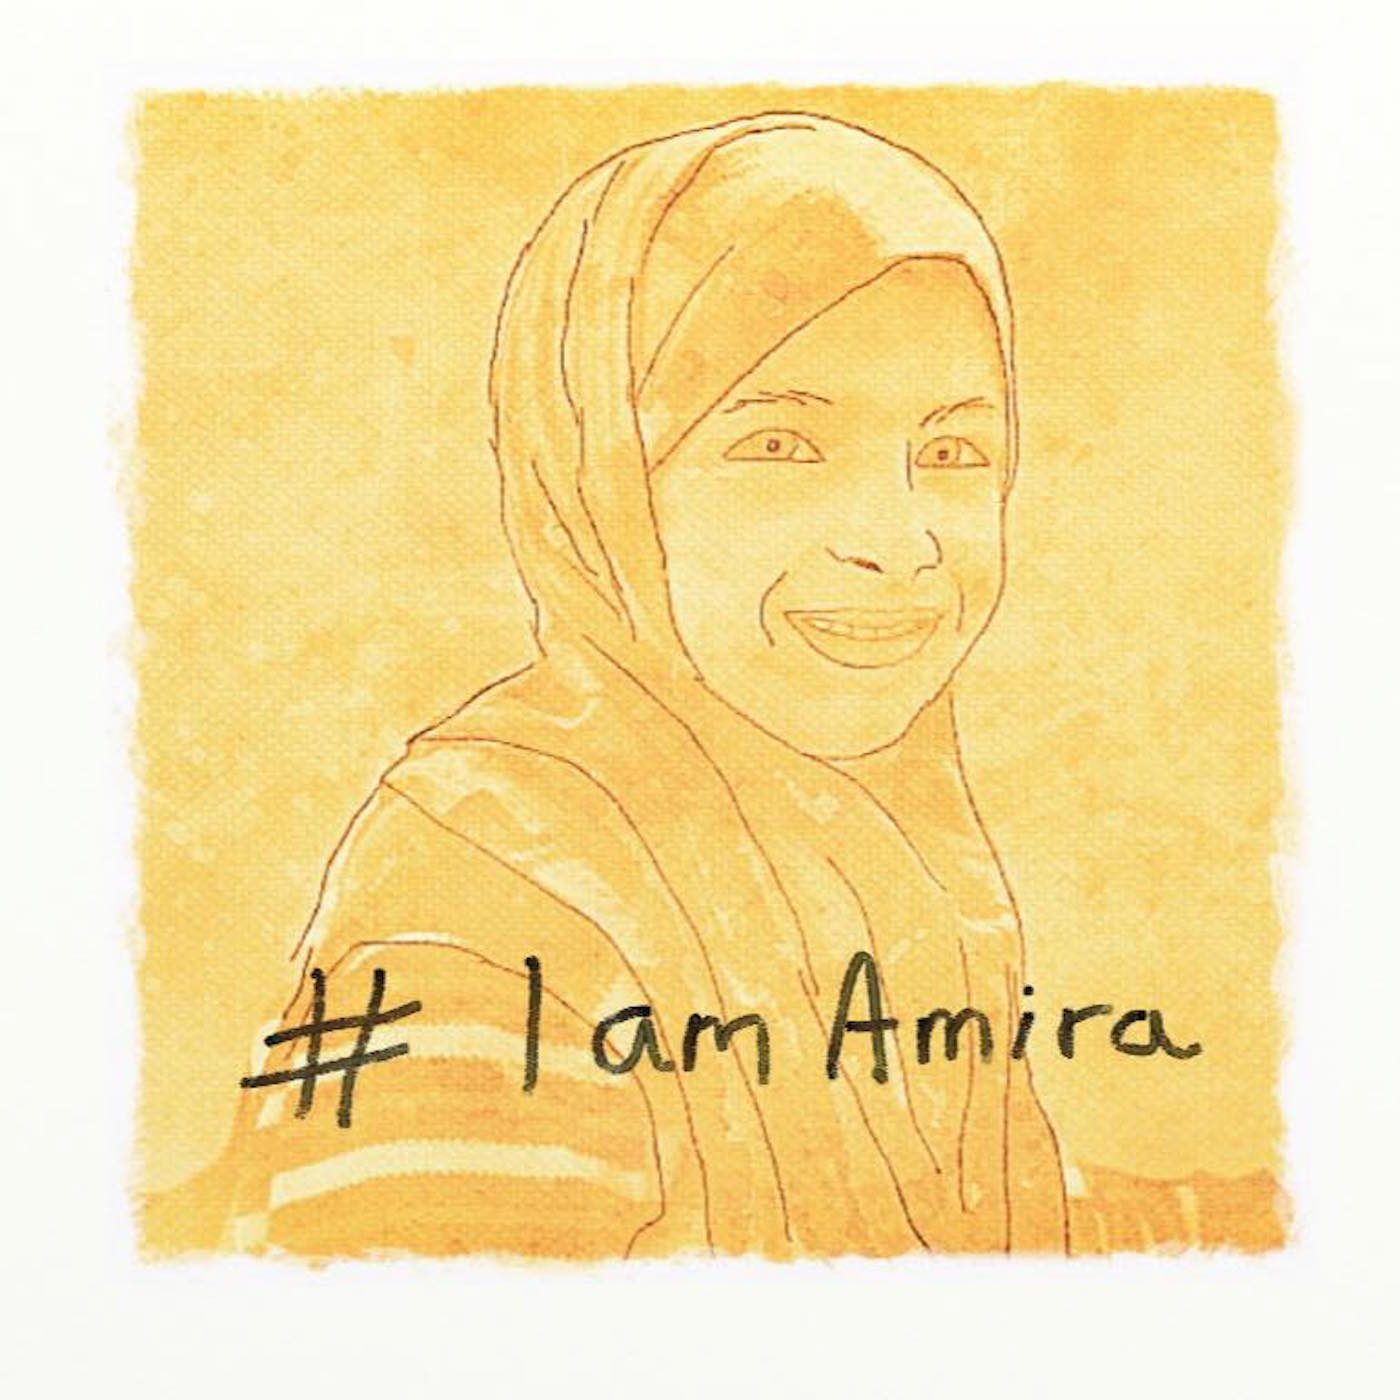 podcast – I am Amira